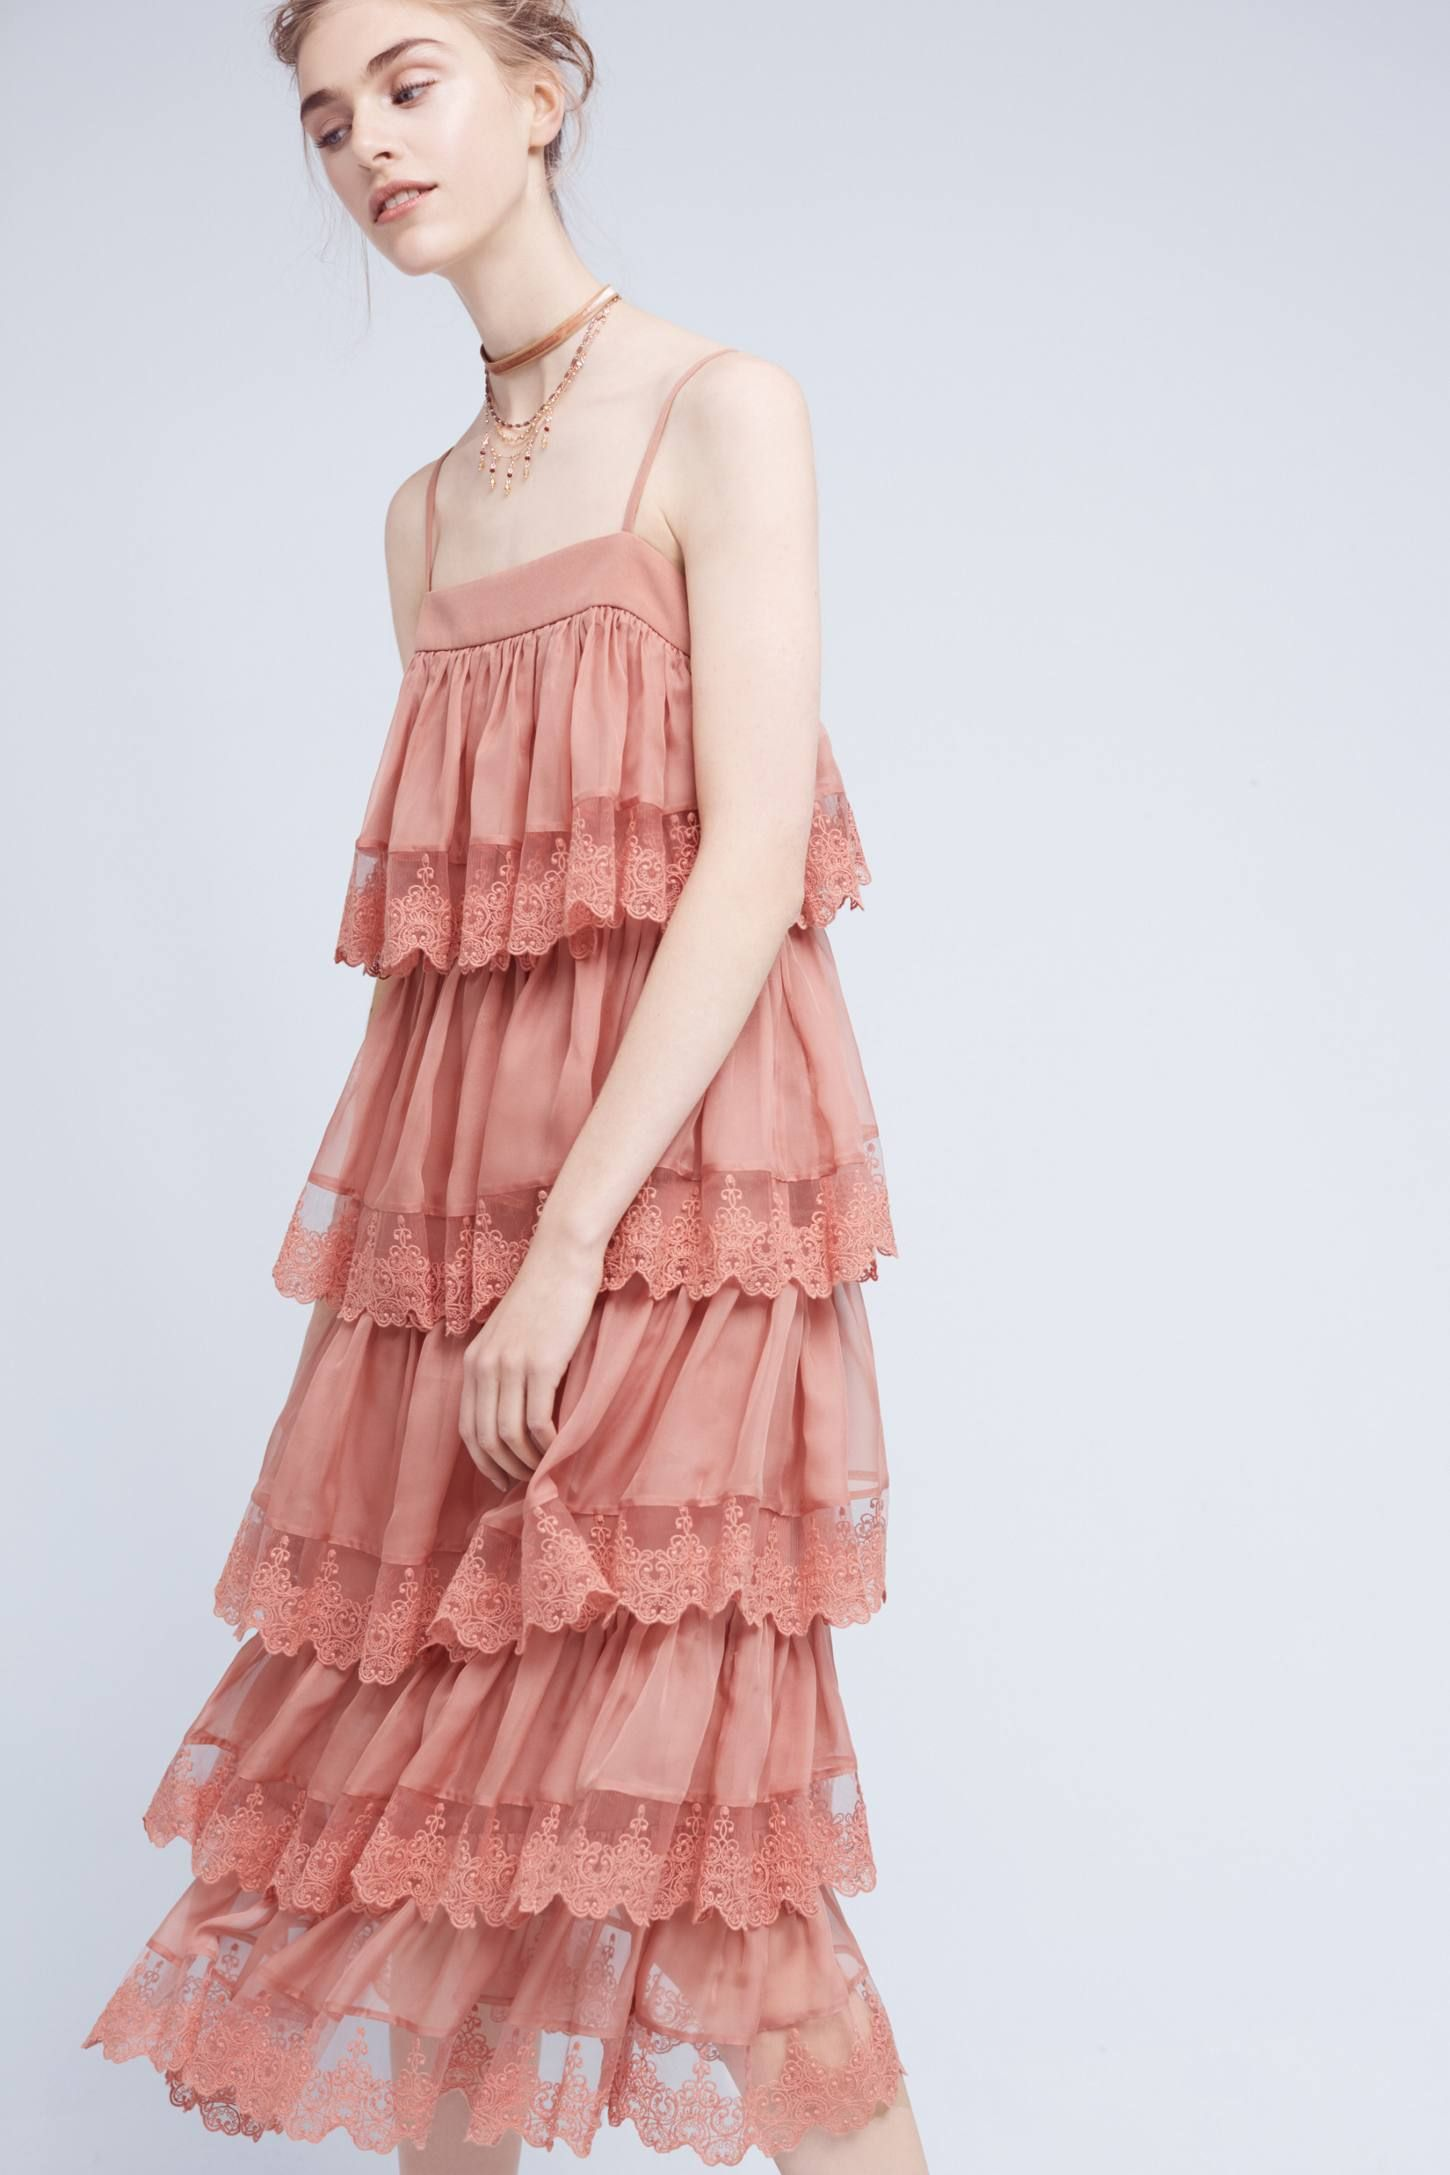 e511c42ce0ac Shop the Tiered Blush Midi Dress and more Anthropologie at Anthropologie  today. Read customer reviews